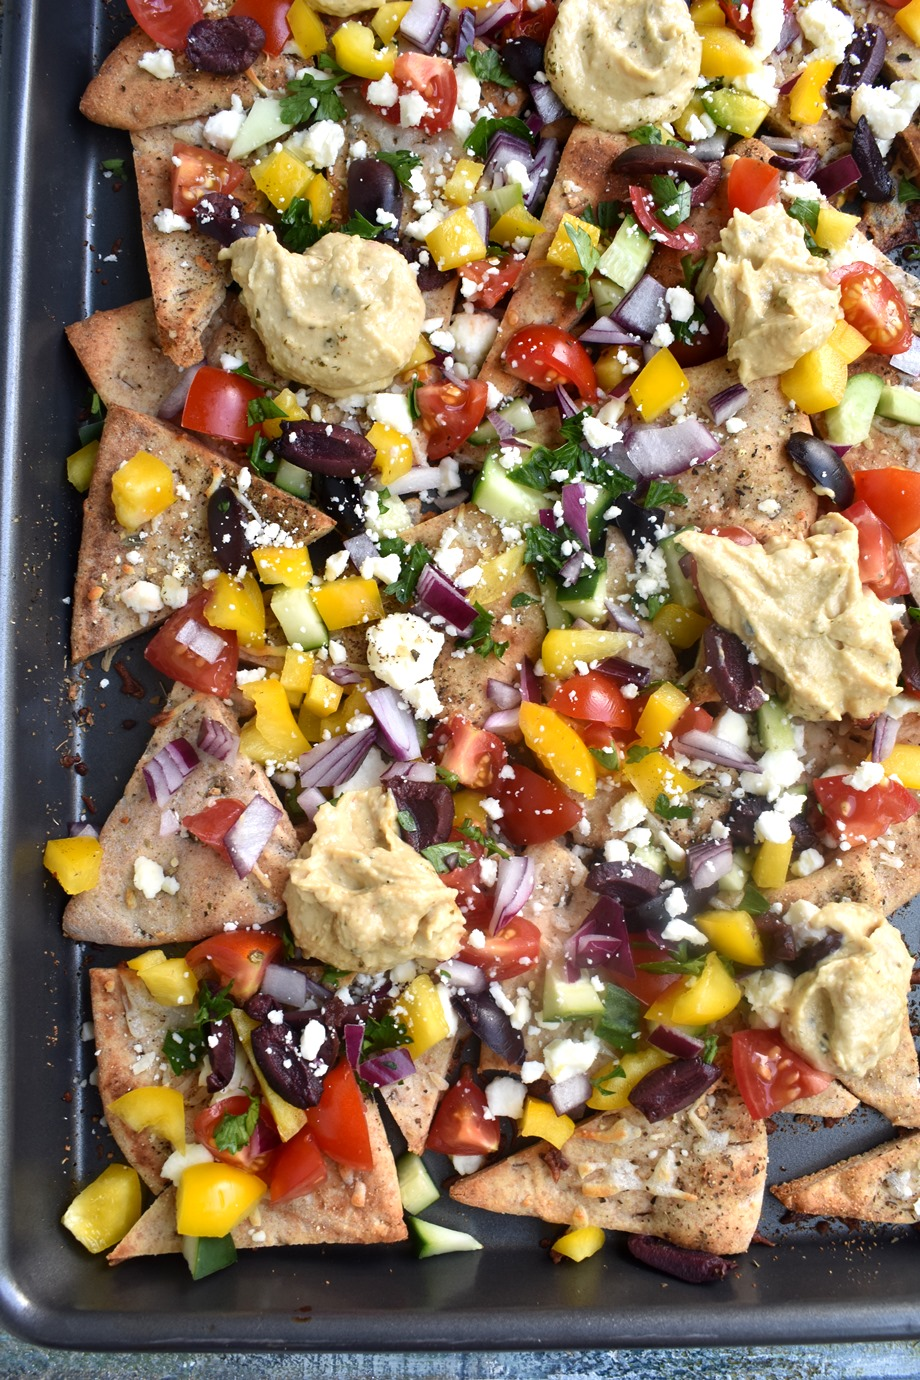 Loaded Greek Nachos are loaded with melted mozzarella and feta cheeses, creamy hummus, tomato, cucumber, olives and more for a flavor-packed, crowd pleasing appetizer!